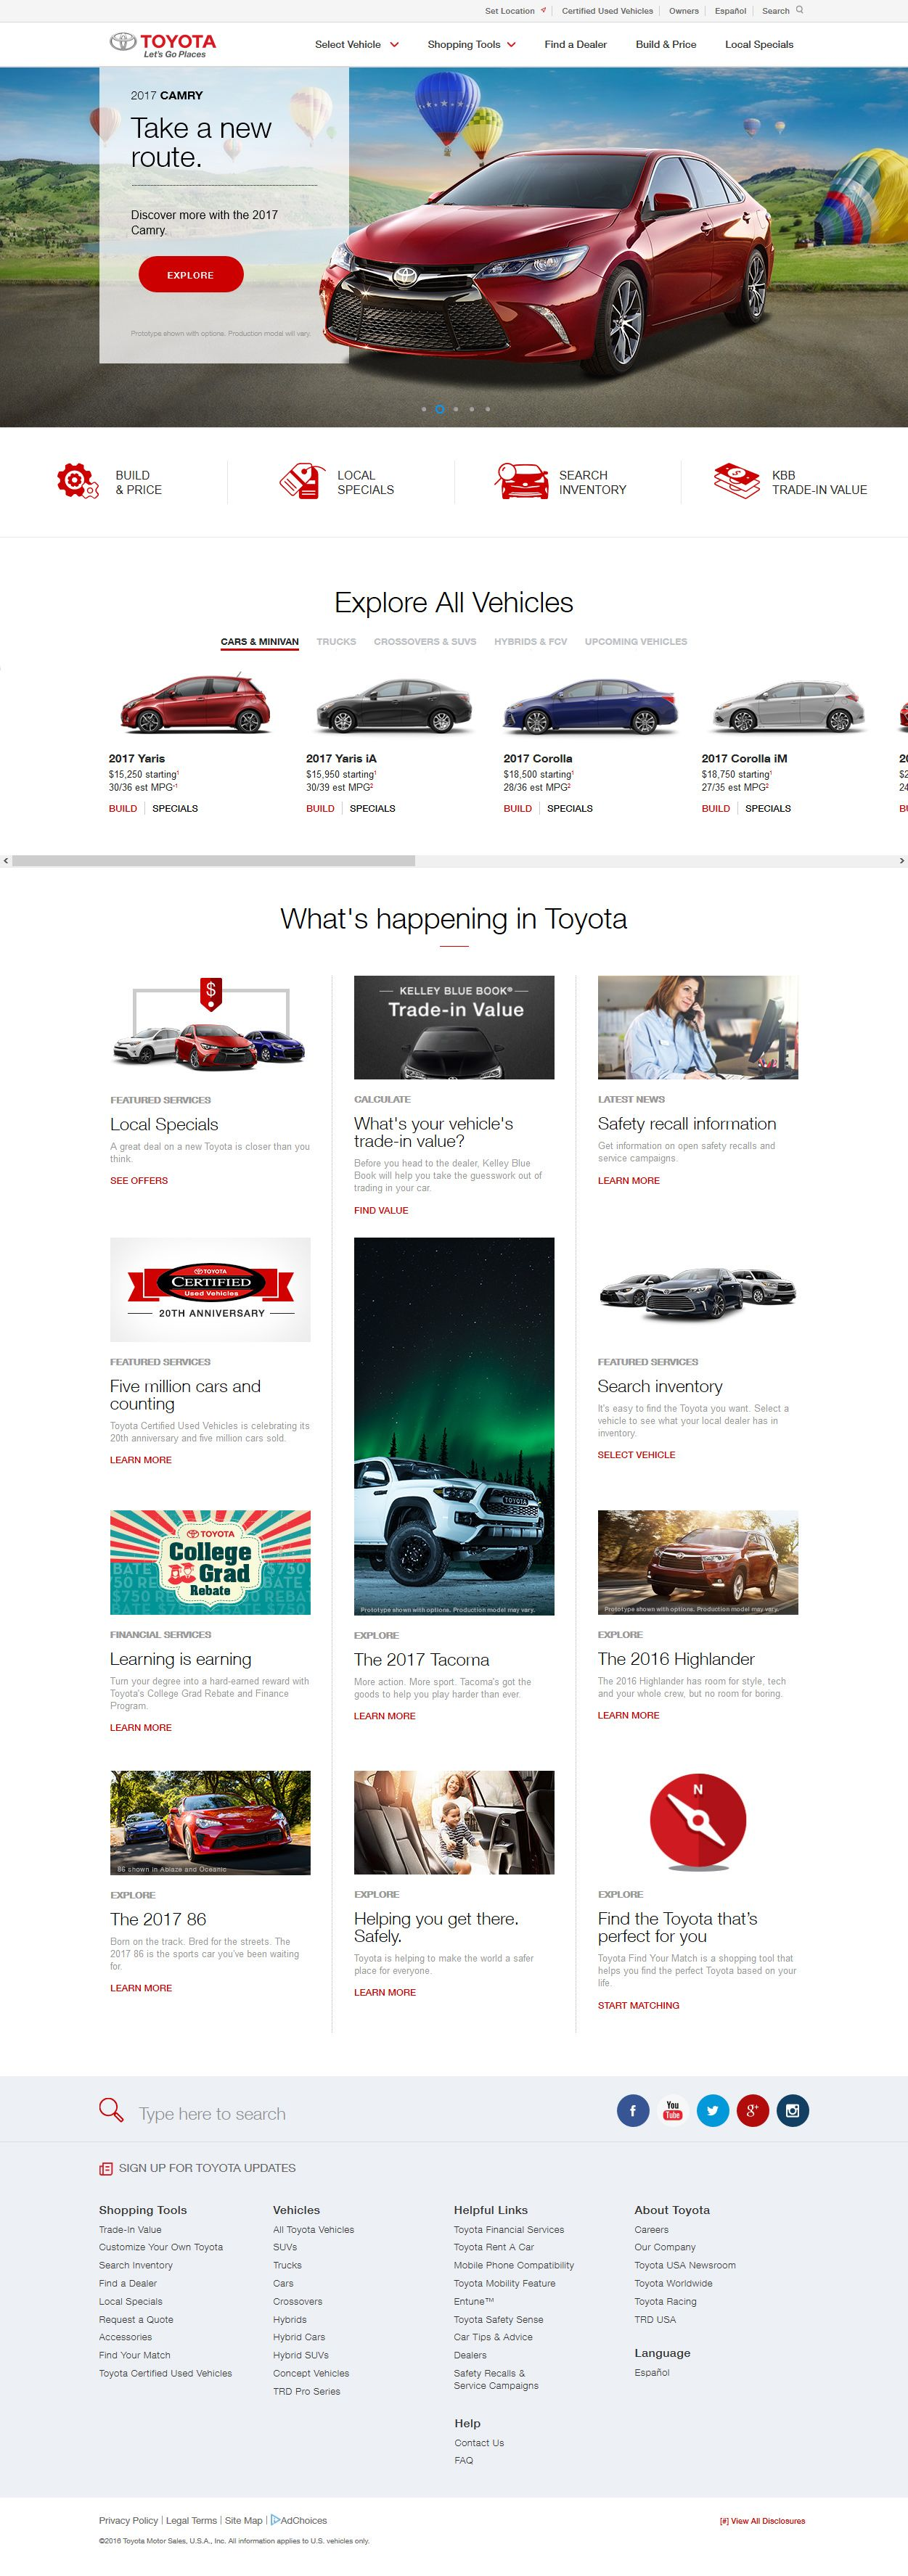 The 25 best toyota website ideas on pinterest toyota 86 concept cars and good looking cars